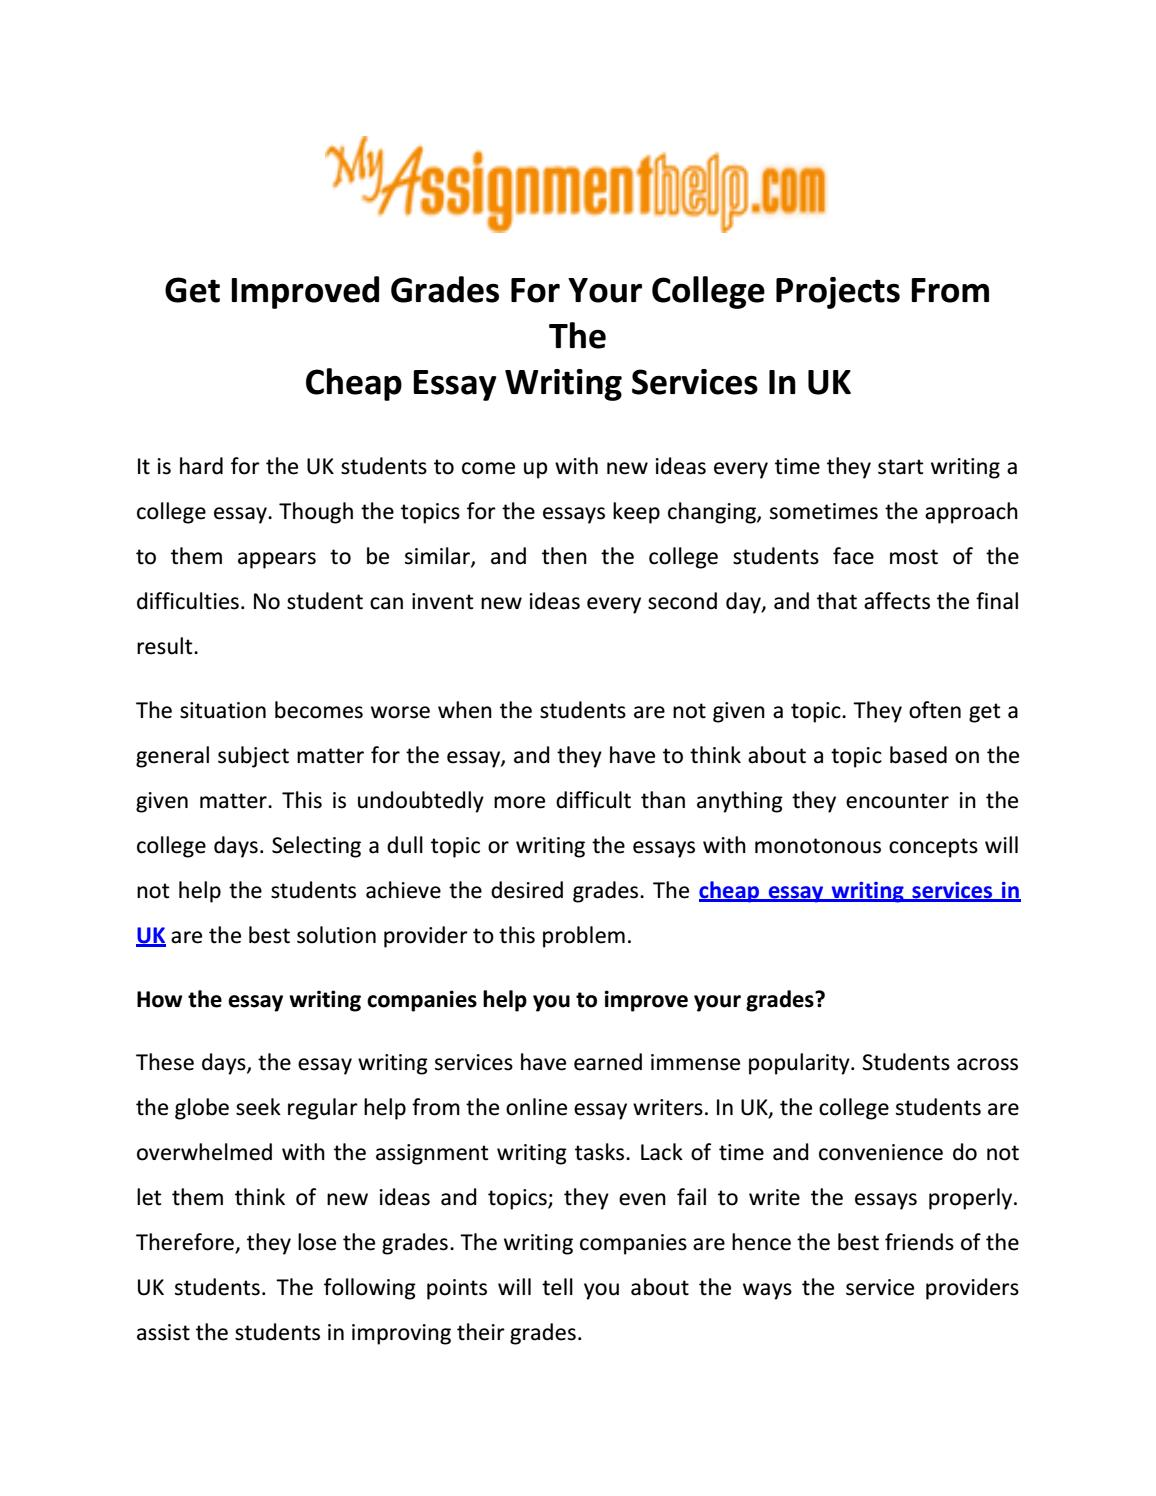 011 Page 1 Essay Example Cheap Writing Unusual Service Reddit Cheapest Review Services Reviews Blog Full